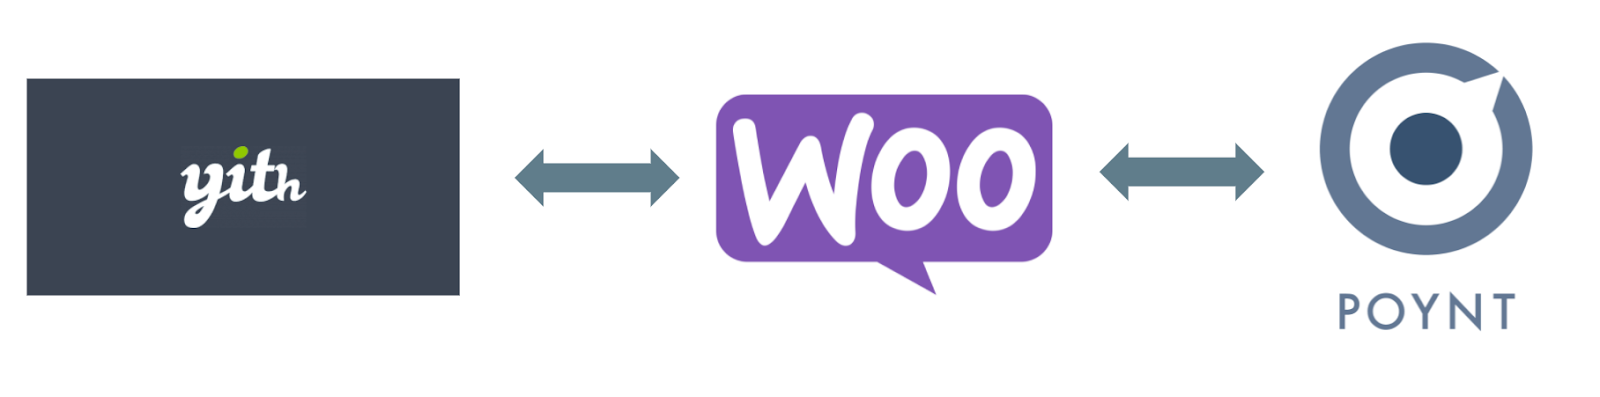 integrating YITH with woocommerce and poynt